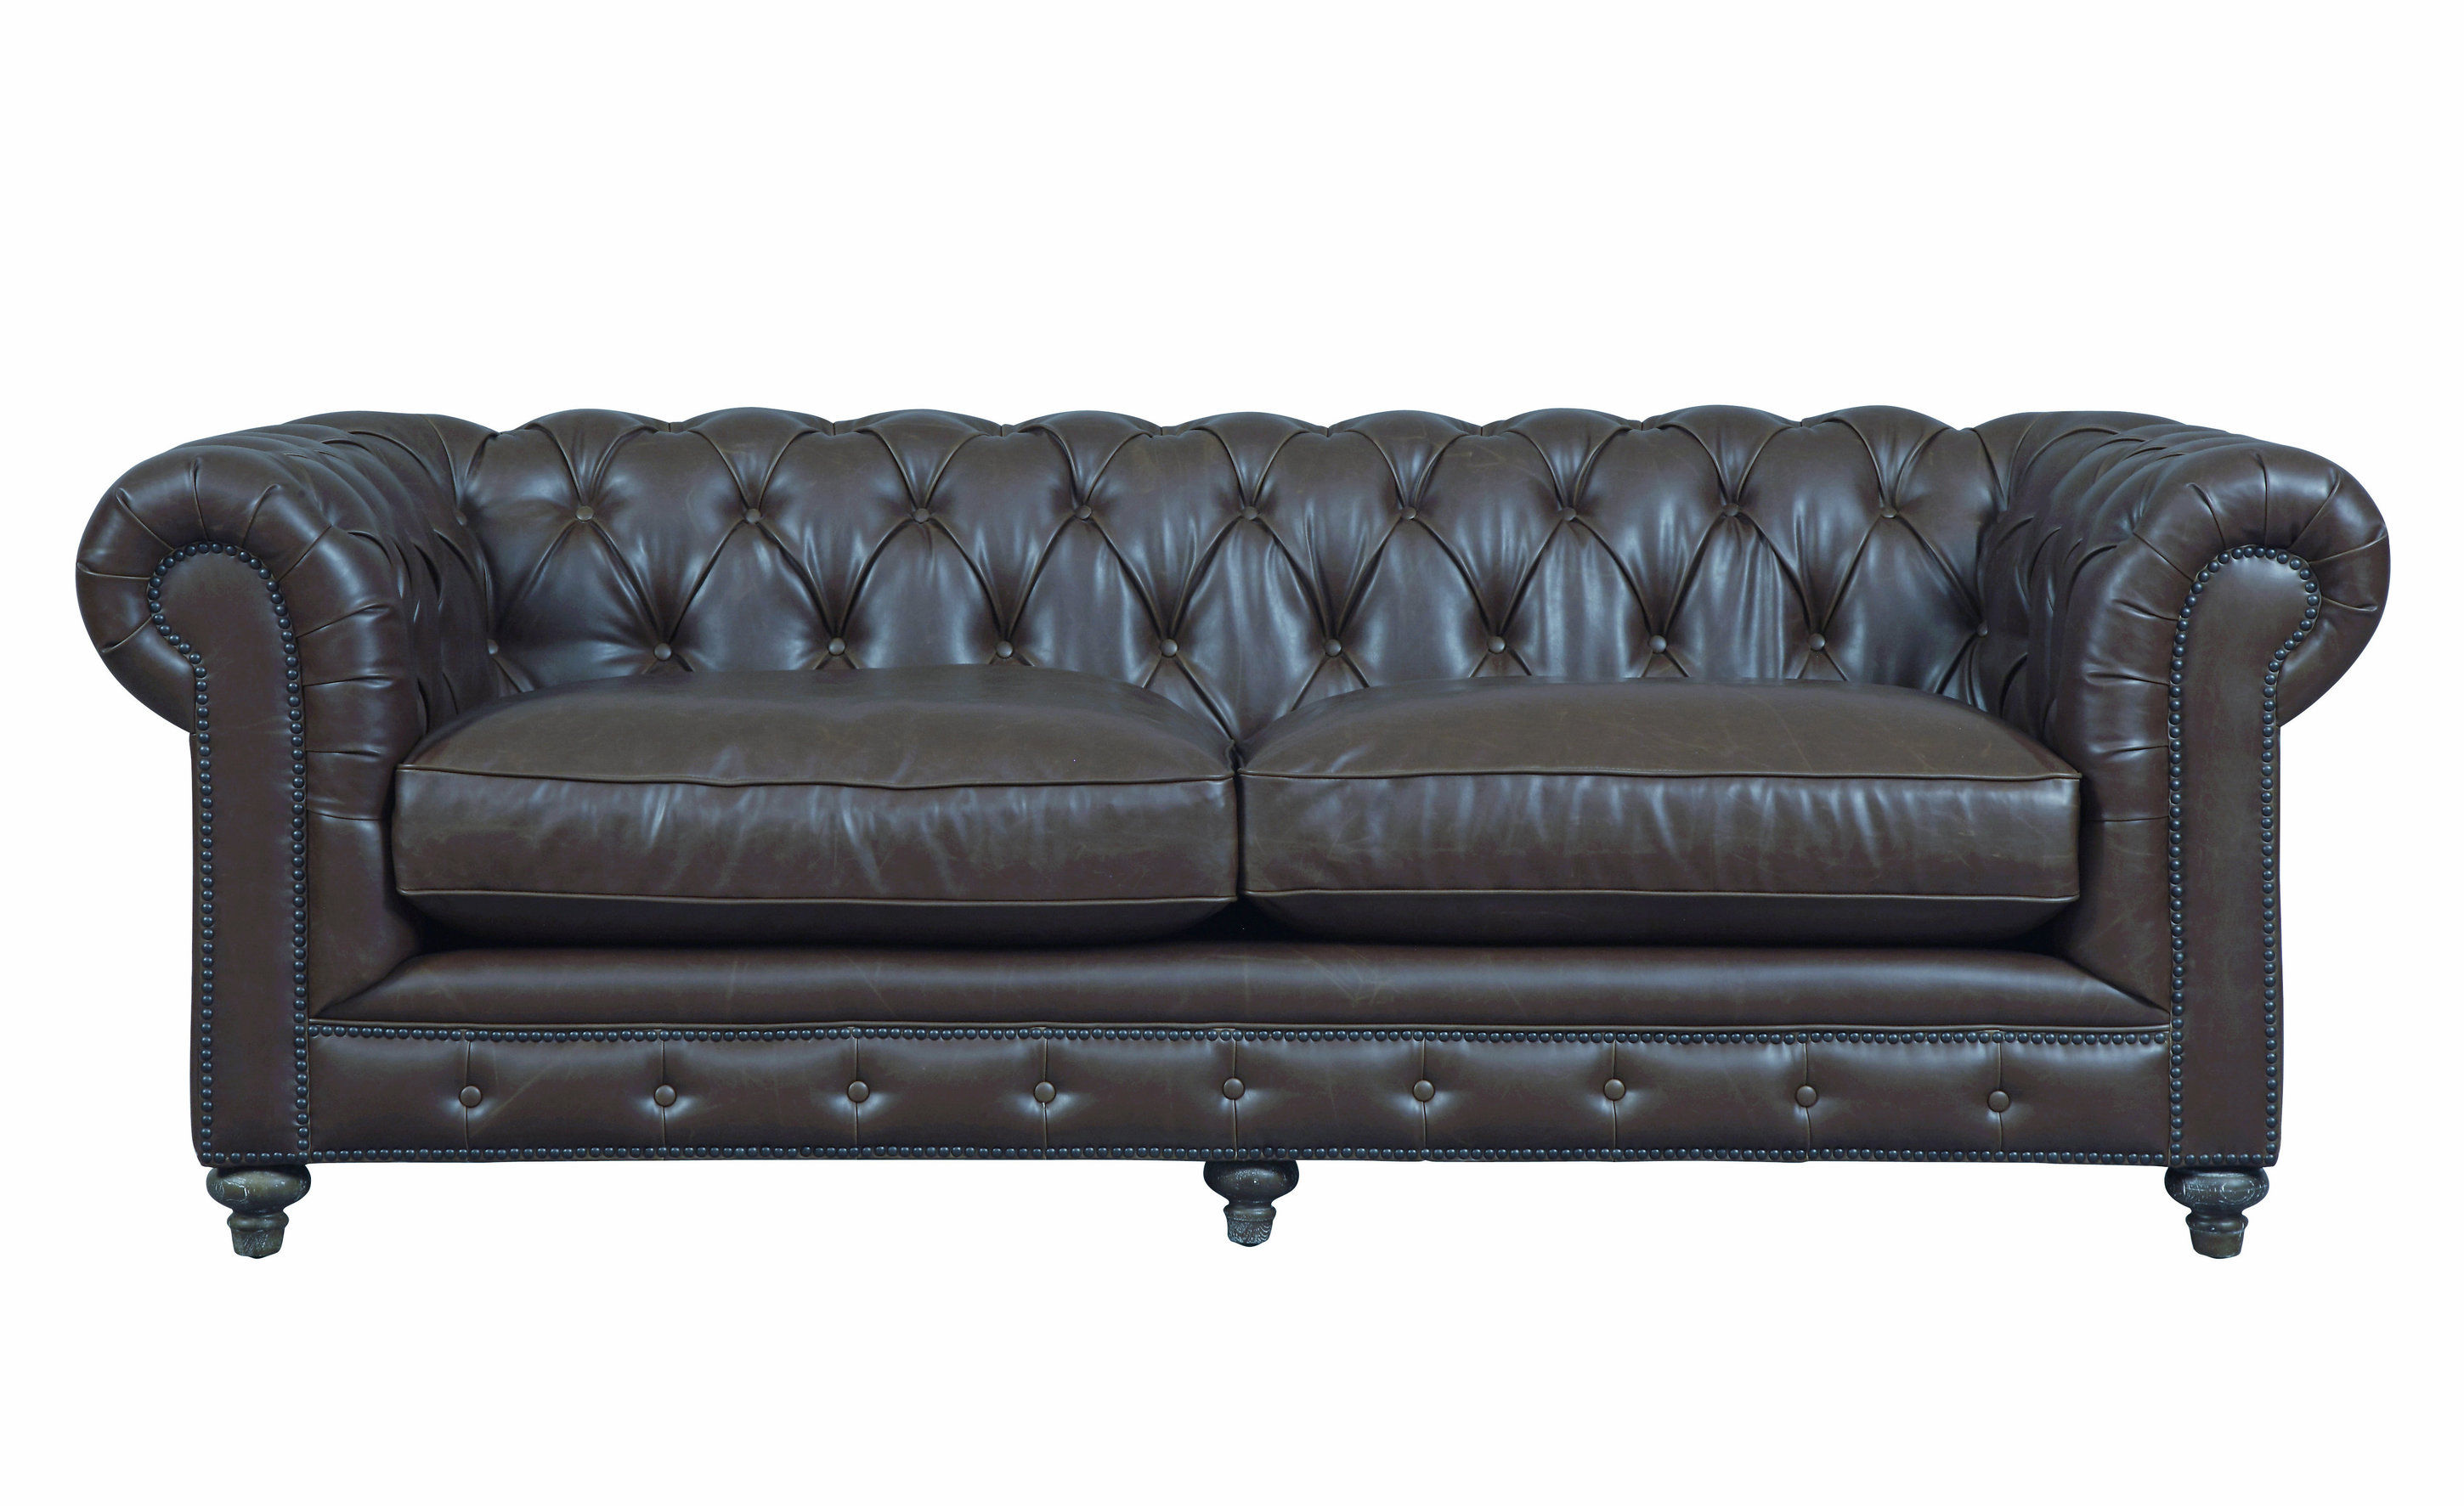 Durango Classic Antique Brown Bonded Leather Oak Legs Sofa ...